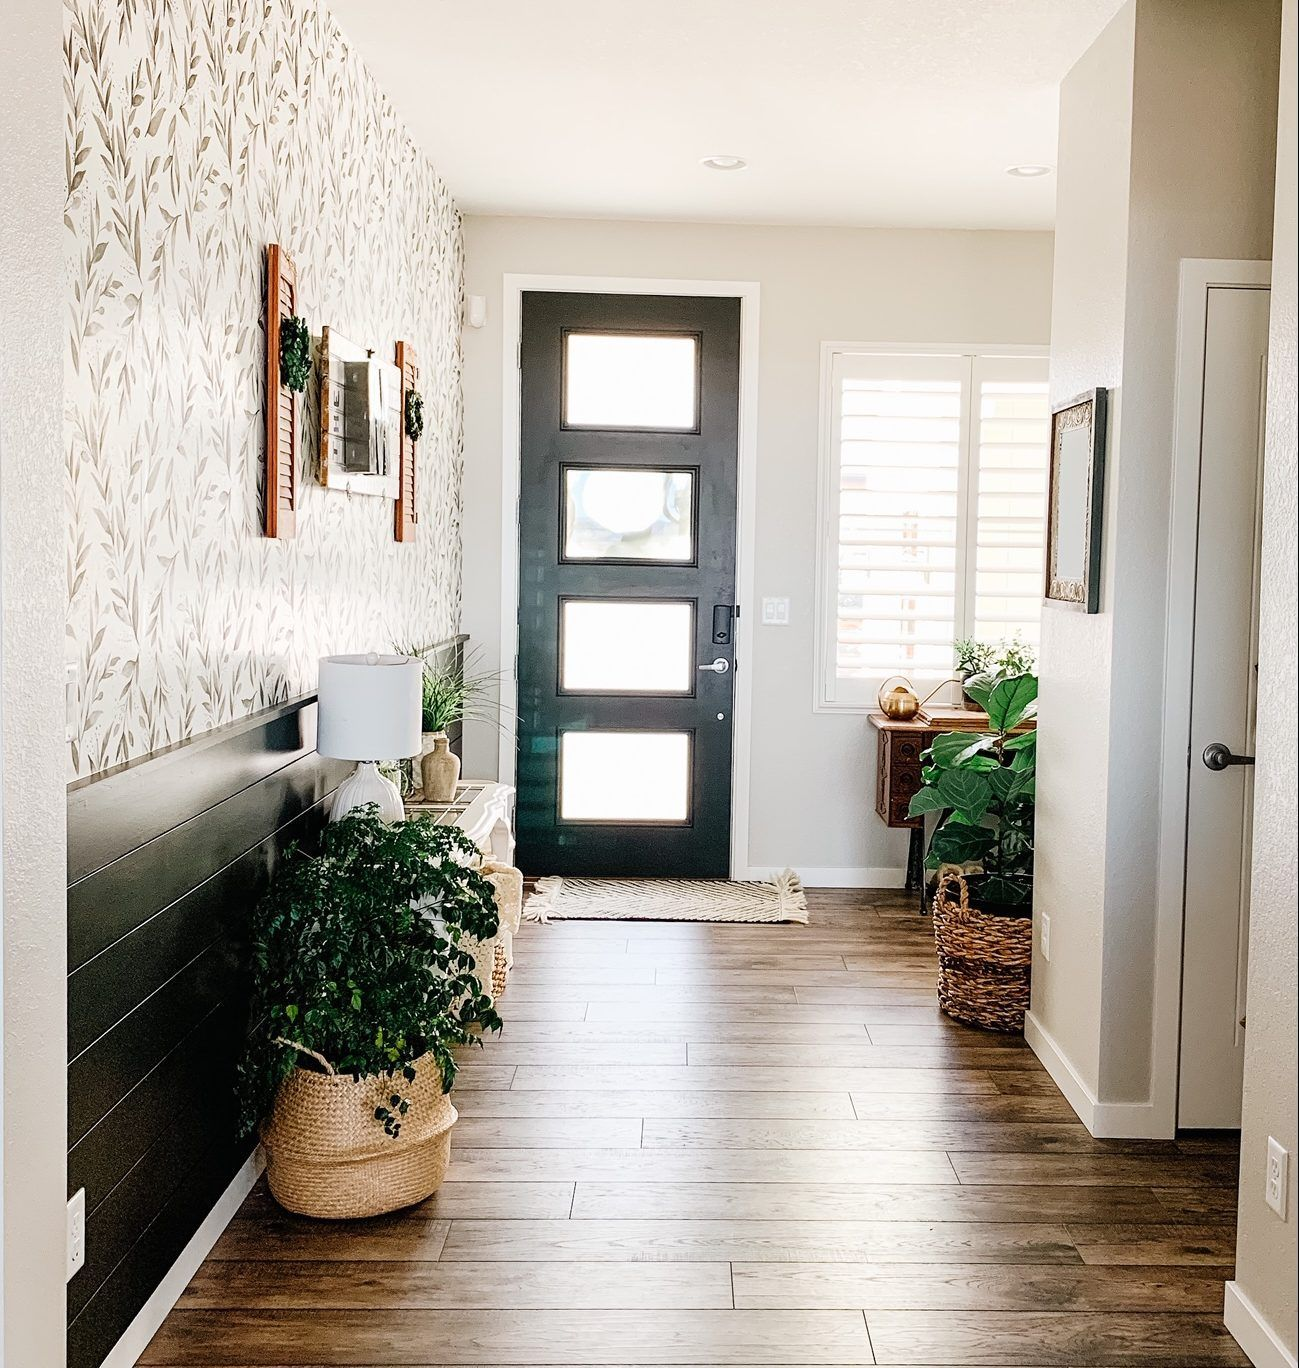 How To Customize Your Home In 3 Simple Ways Peel And Stick Wallpaper Entryway Inspiration Entryway Inspo